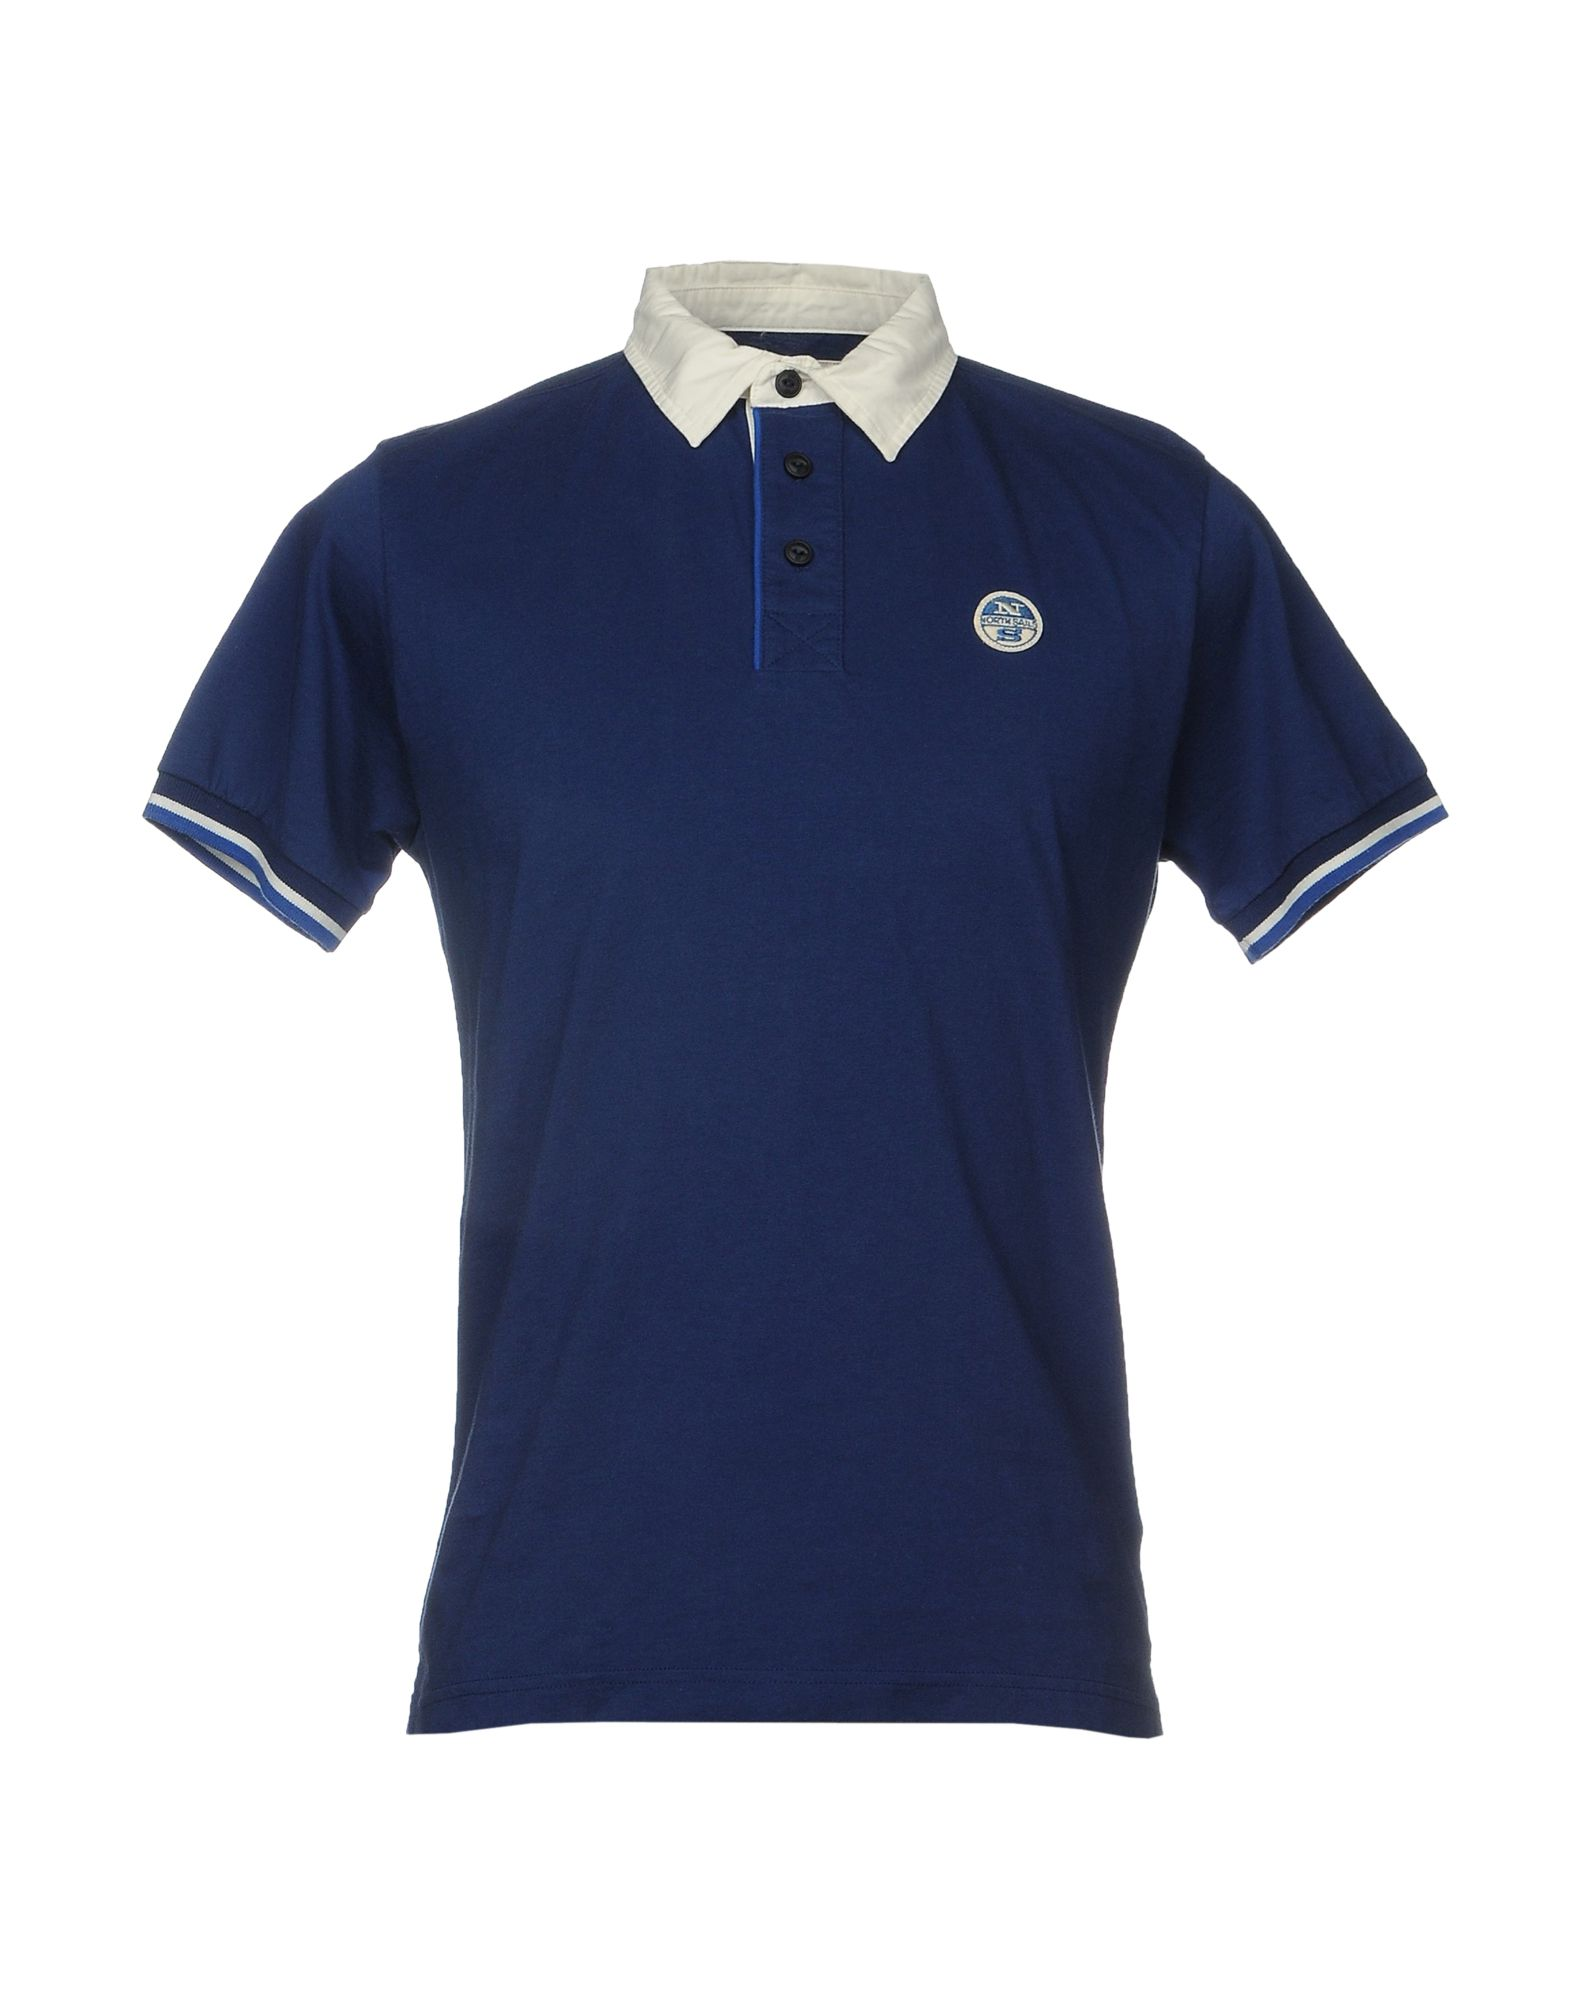 NORTH SAILS Polo Shirt in Blue